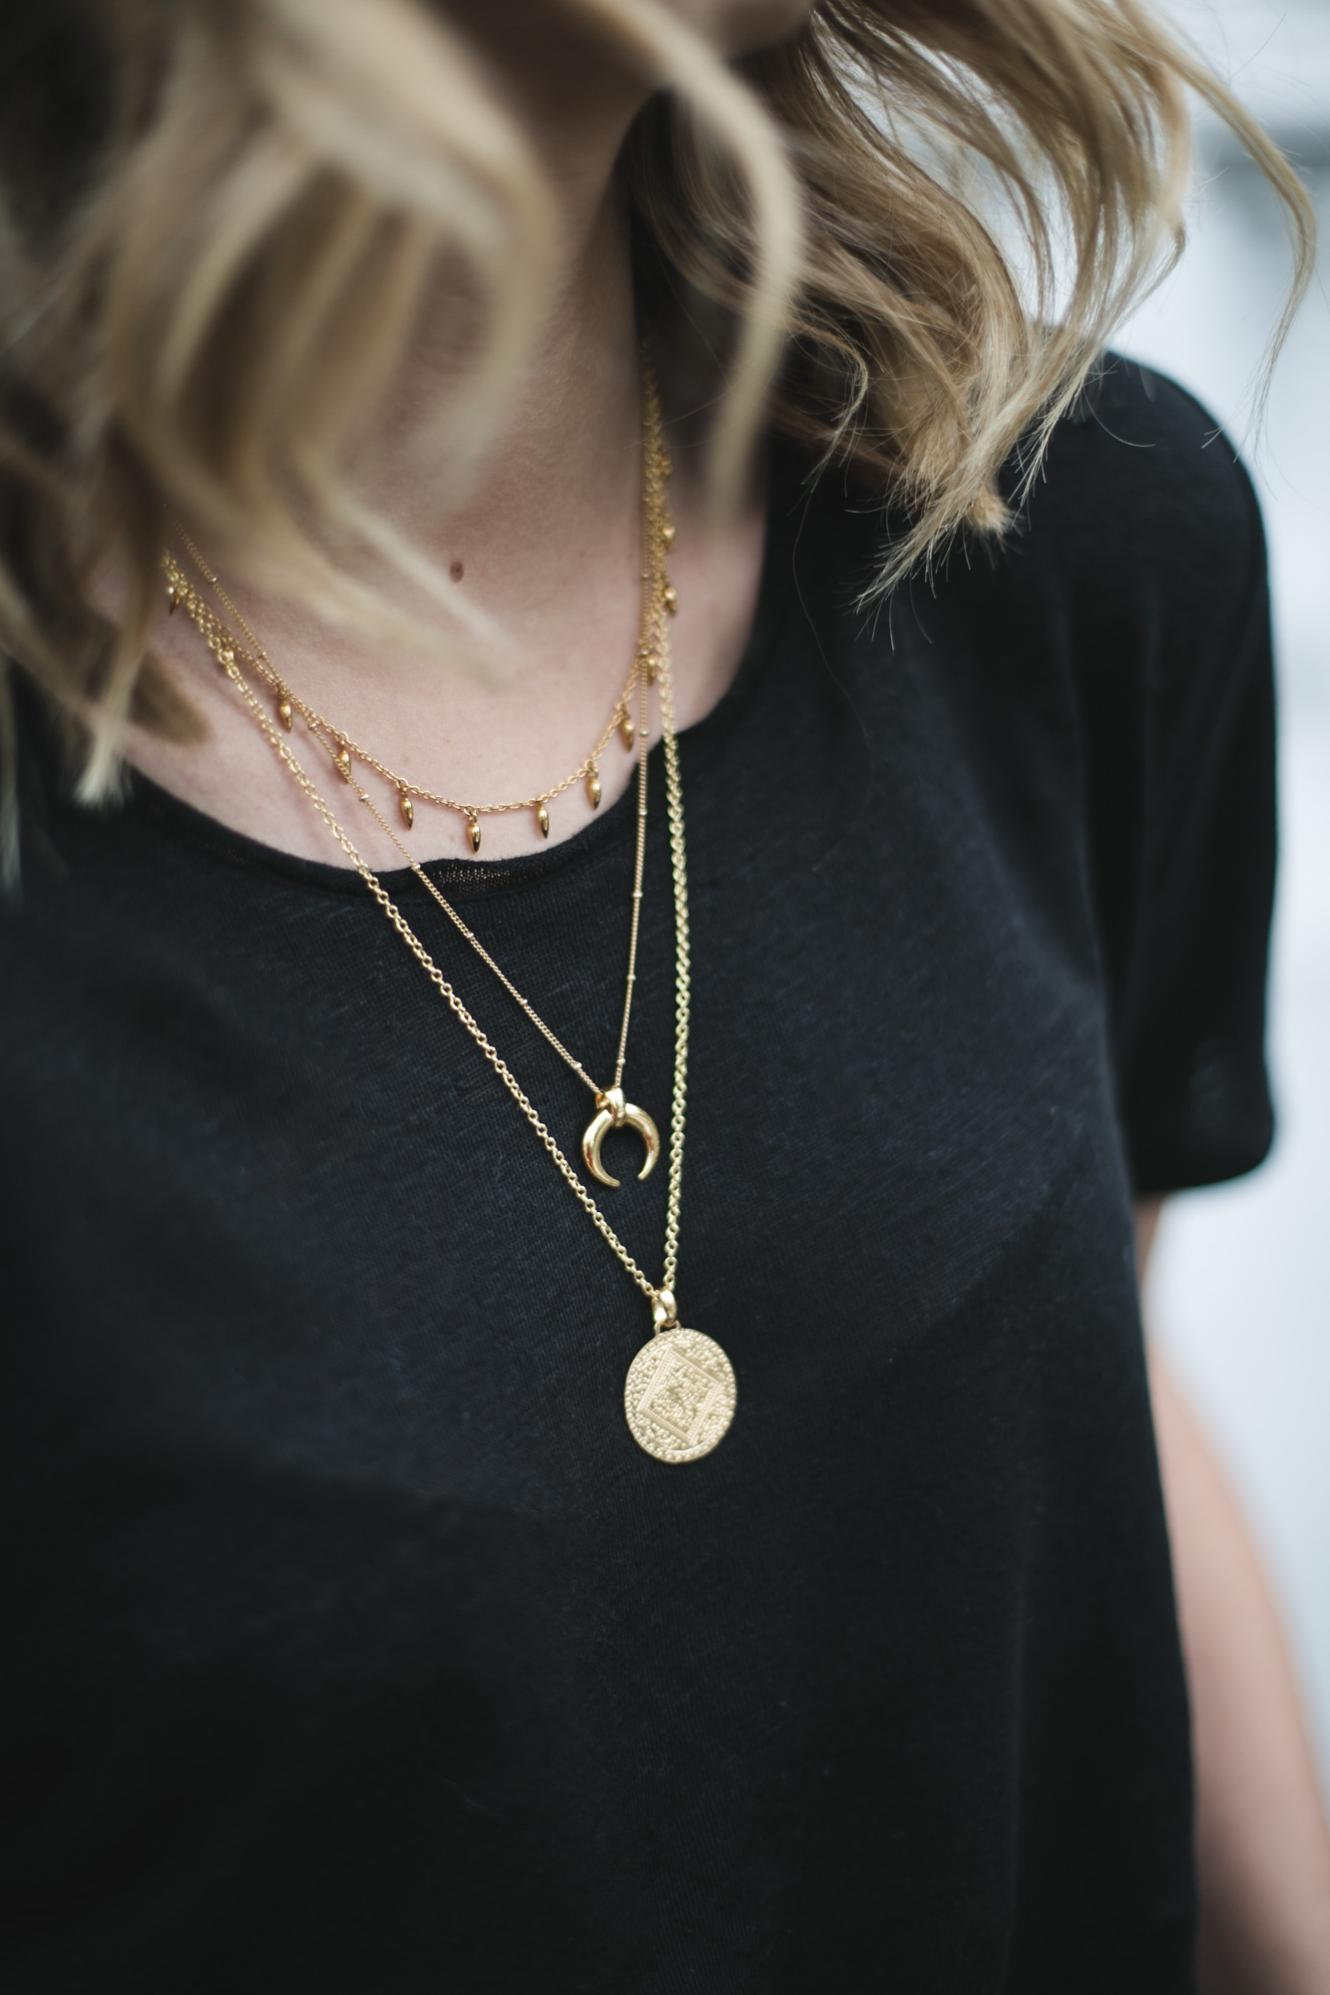 Black t-shirt, lob hair layered gold necklaces